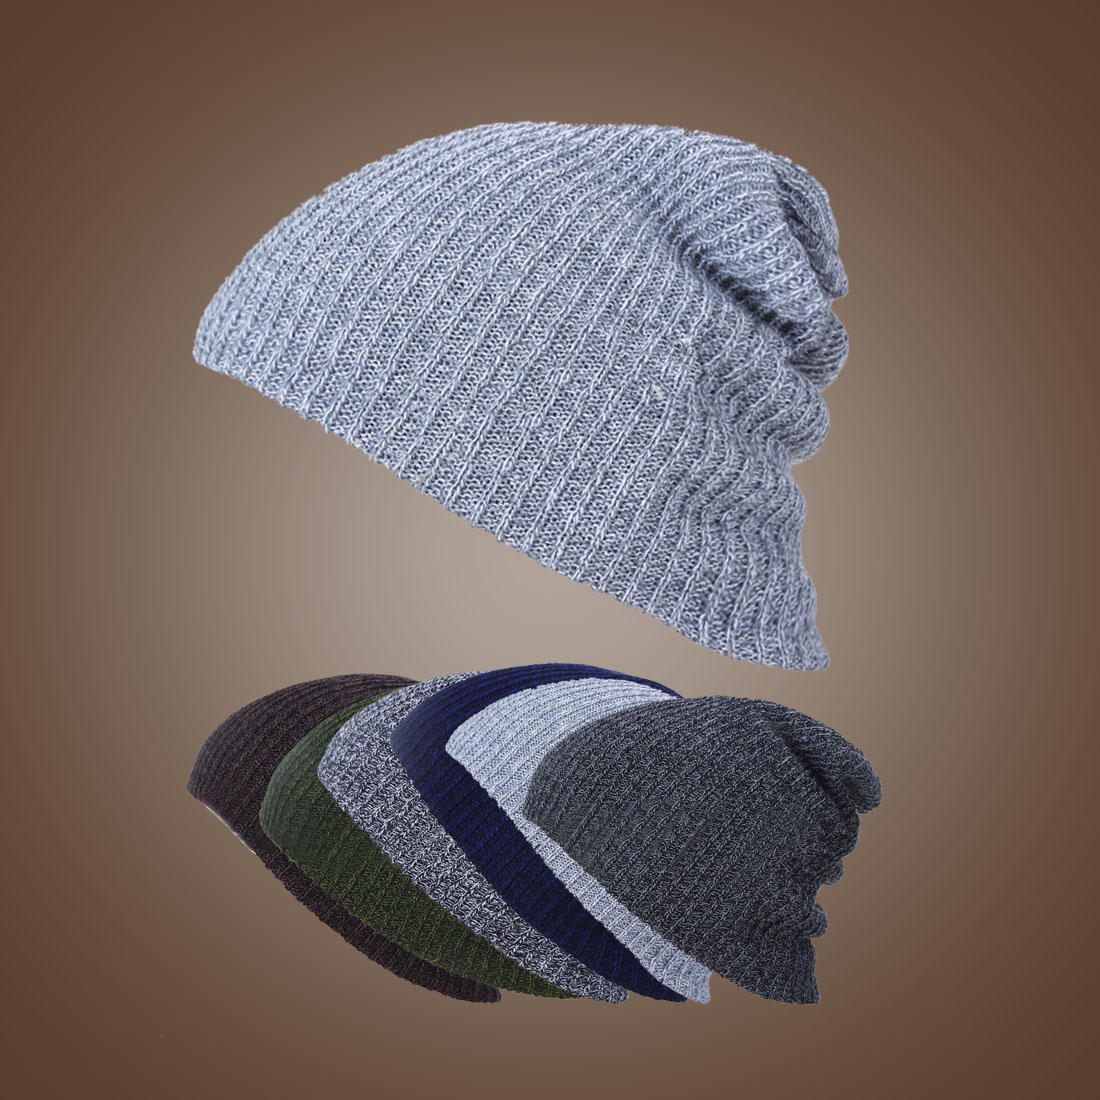 New Knit Men's Baggy Beanie Oversize Winter Warm Hats Slouchy Chic Crochet Knitted Cap For Women Girl's Hat Thick Female Cap winter casual cotton knit hats for women men baggy beanie hat crochet slouchy oversized cap warm skullies toucas gorros w1